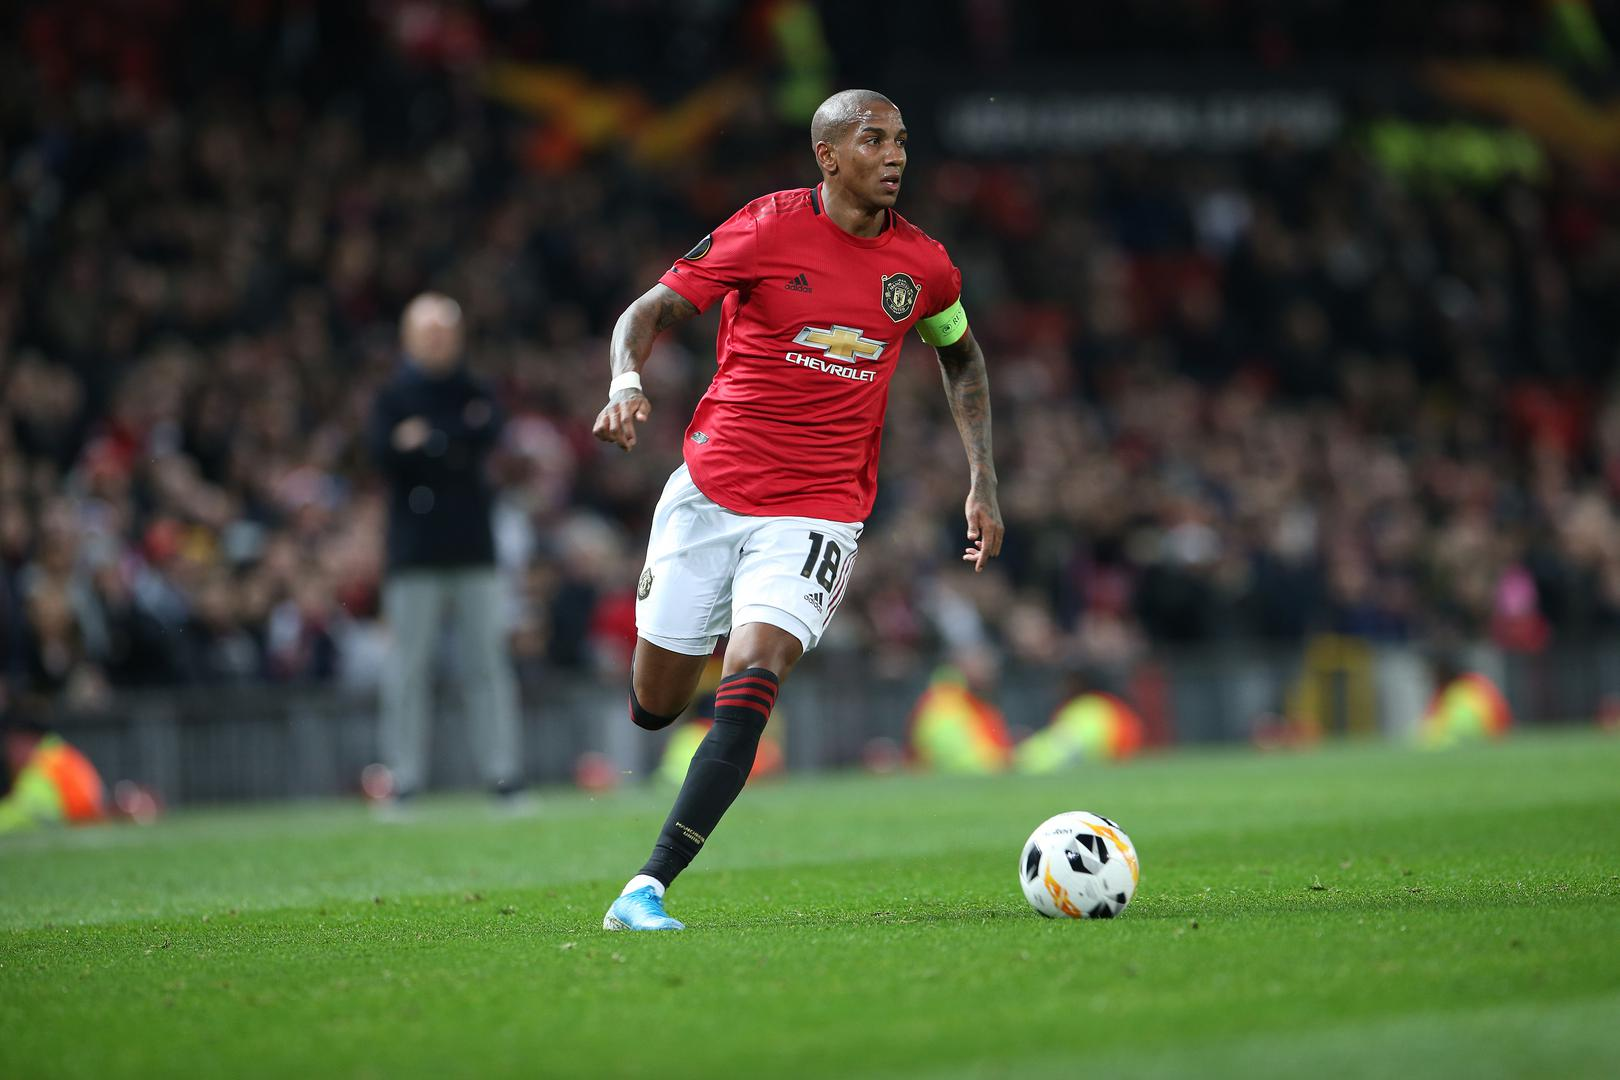 Ashley Young wearing the armband.